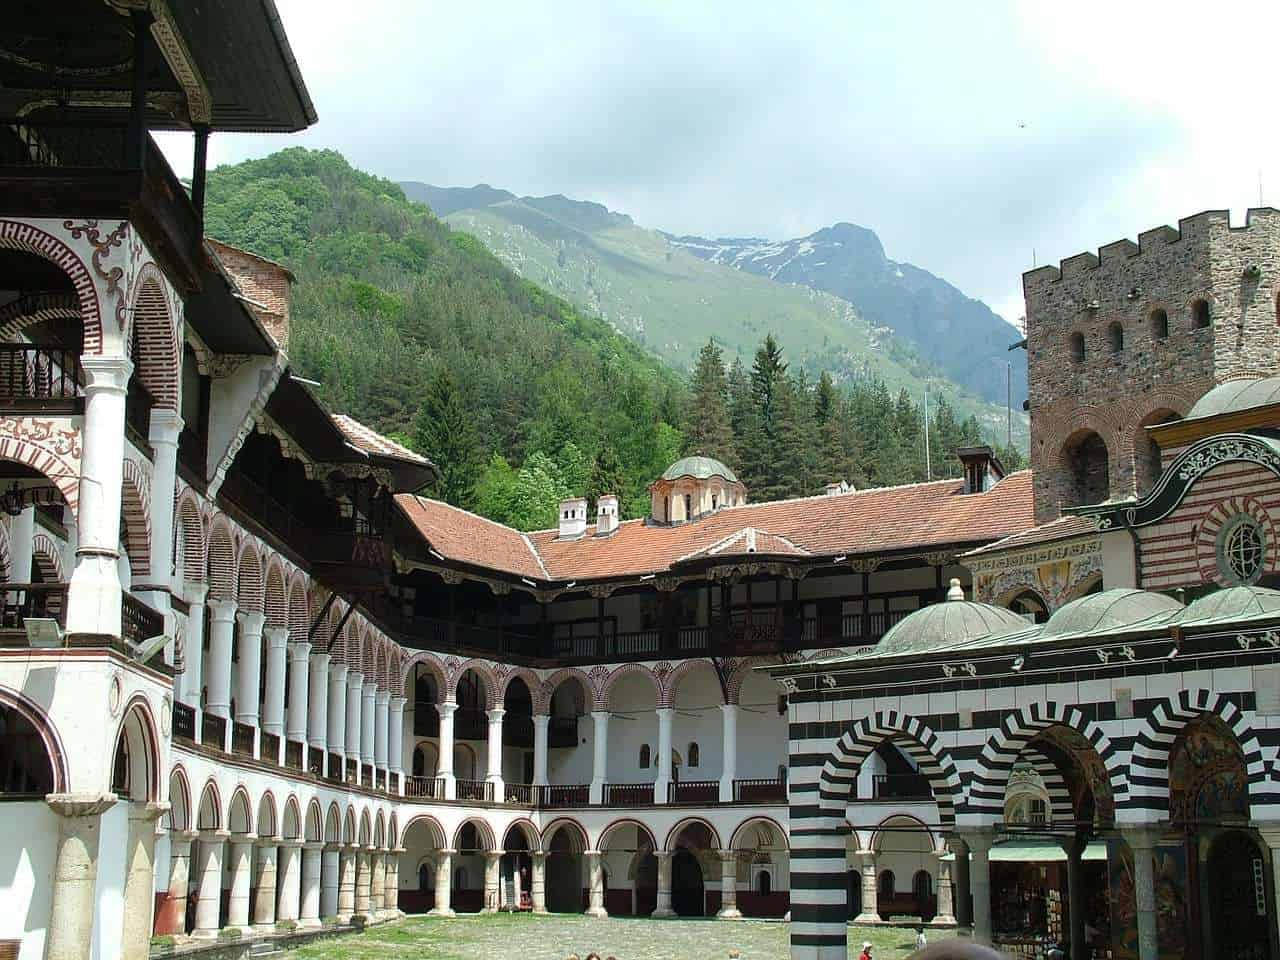 Places to visit in Bulgaria - The Rila Monastery